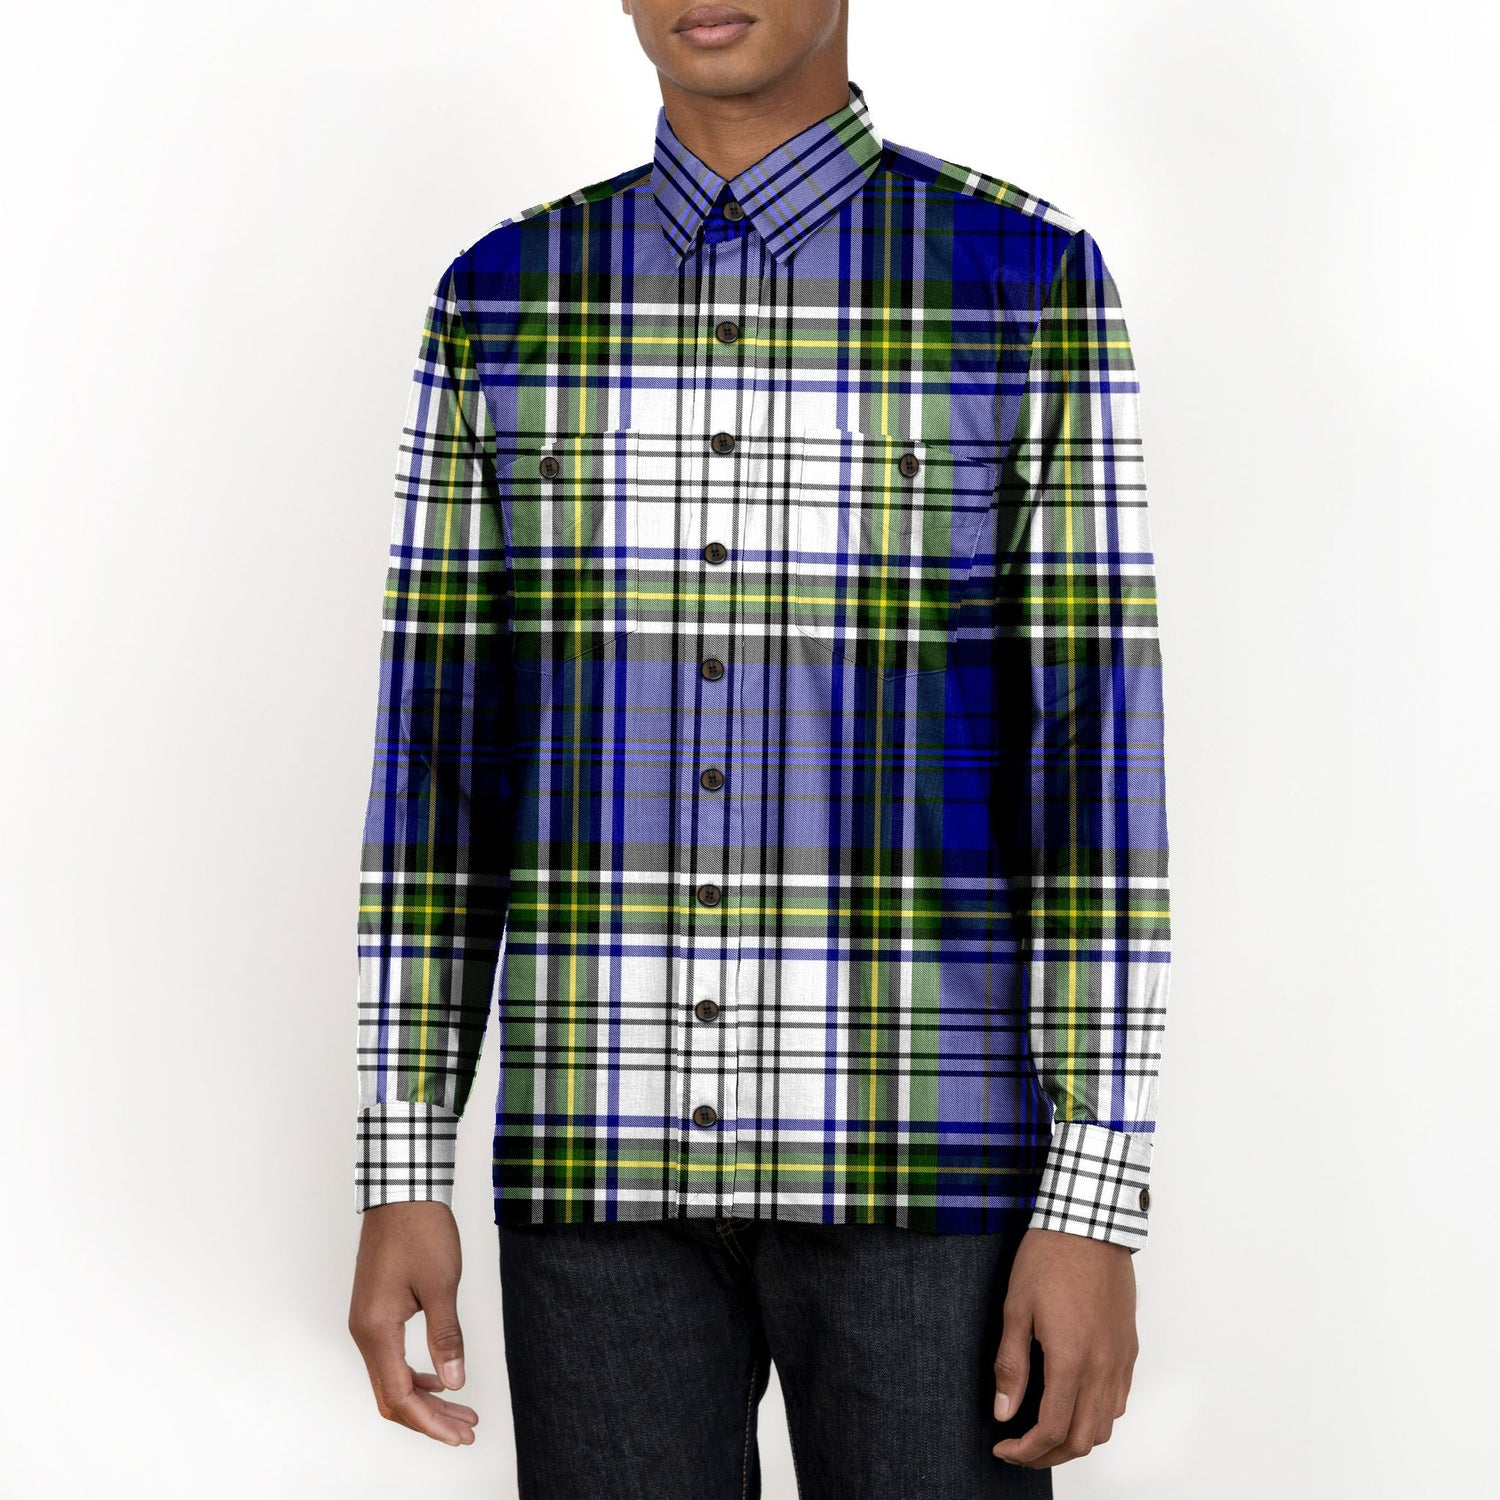 The Danny Torrance Plaid Flannel